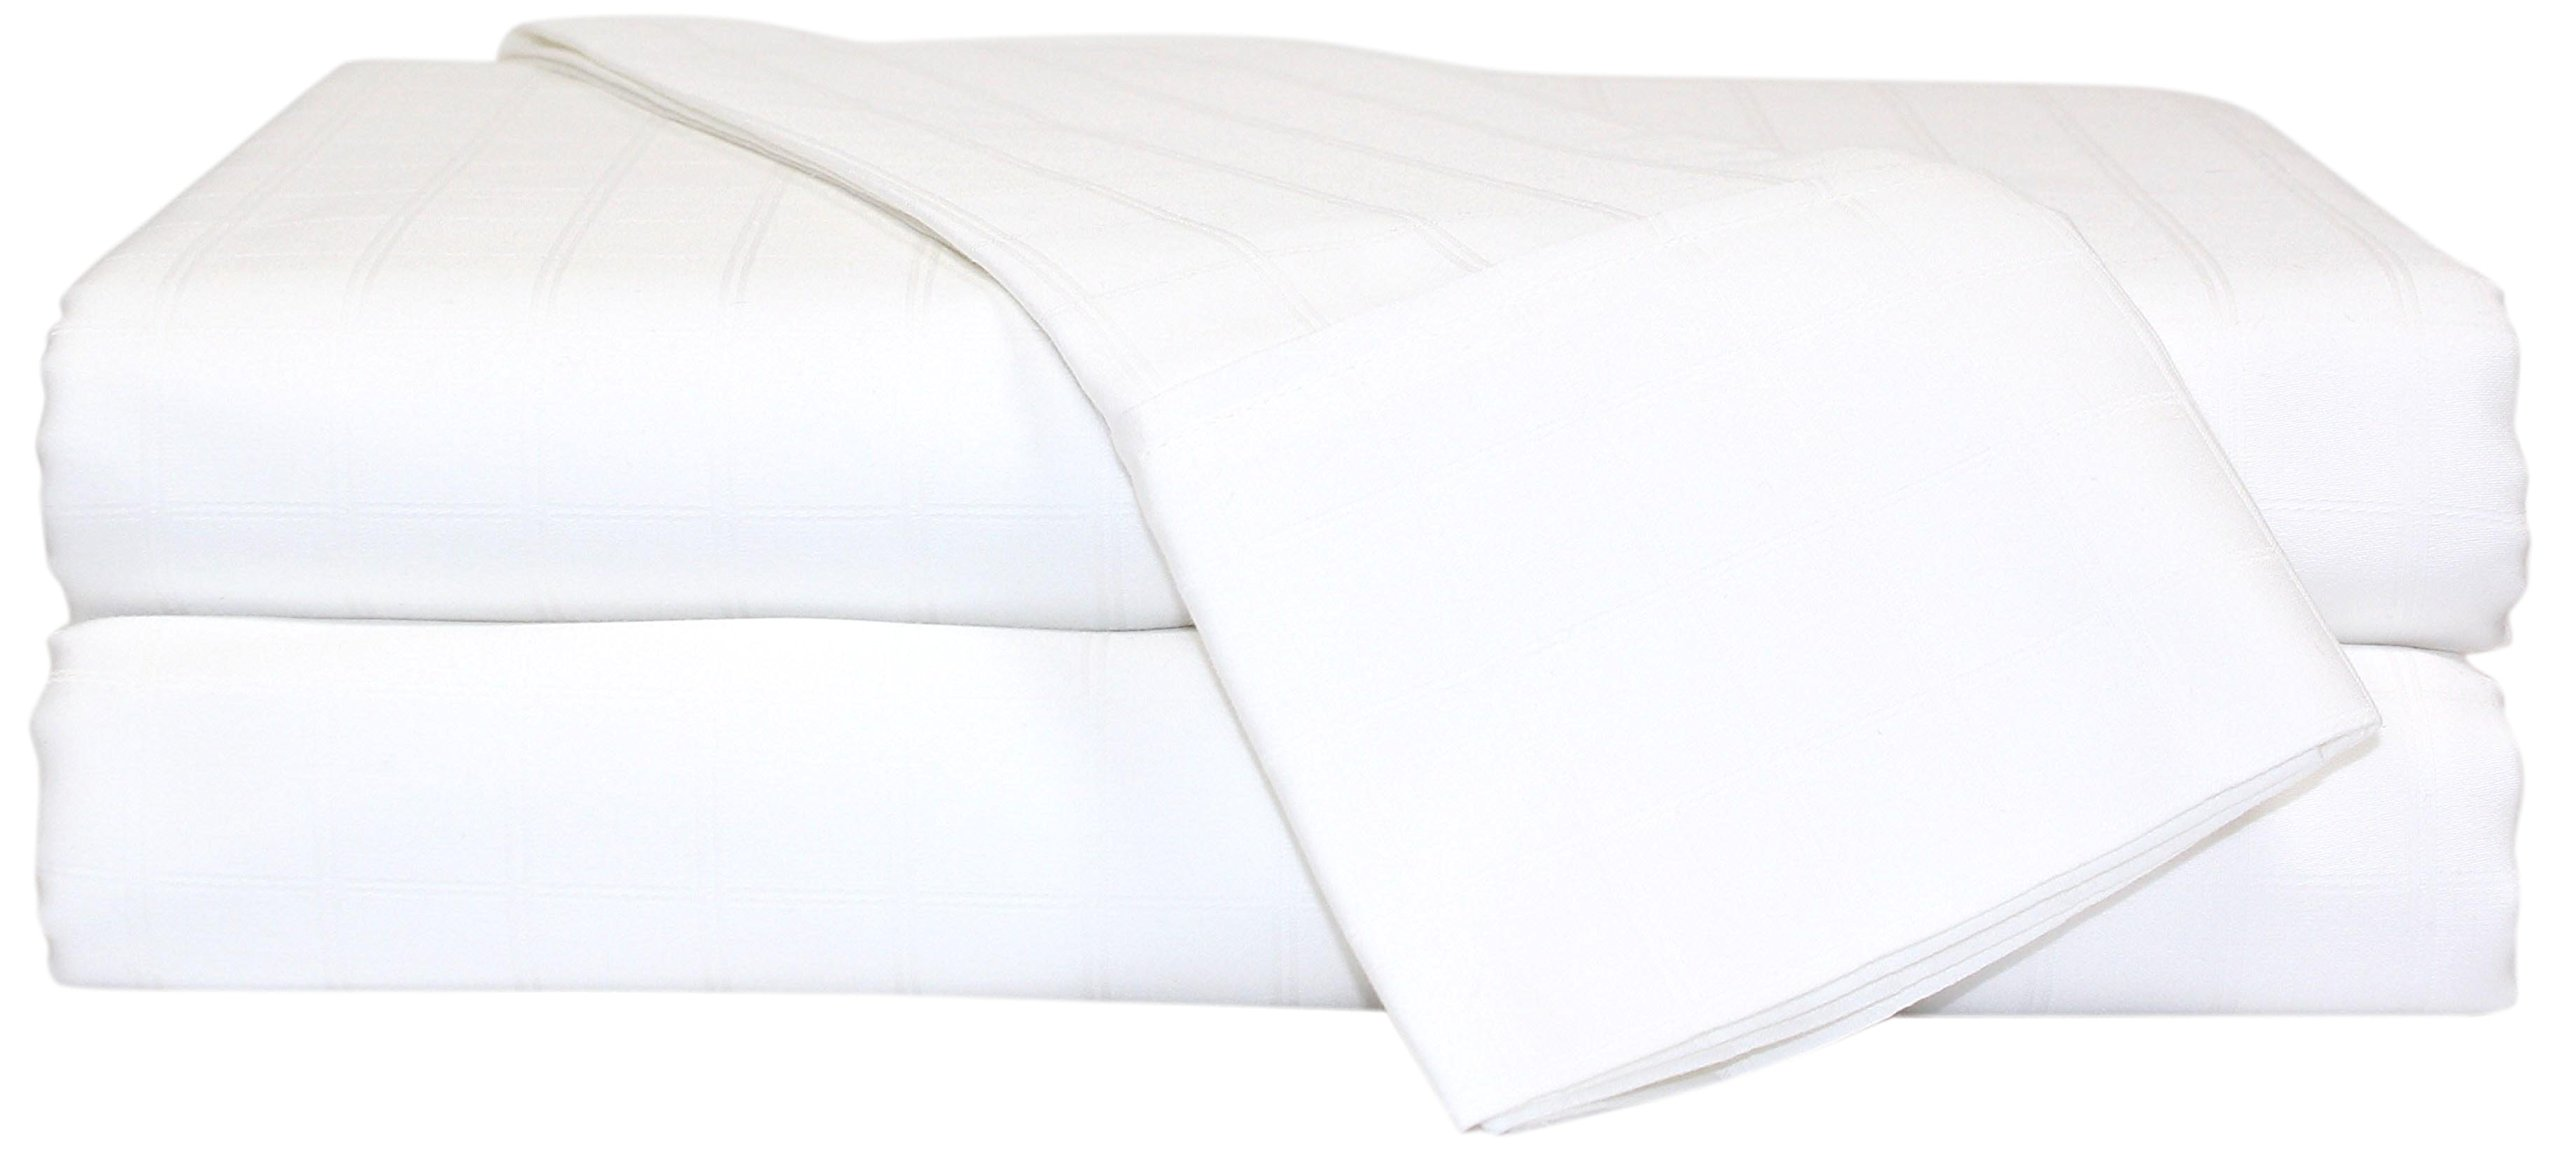 Perthshire Platinum Collection 480 Thread Count 1-inch Square Window Panel Sheet Set Solid Hem, Extra Soft - Breathable & Cool Sheets - Hypoallergenic, Queen, White